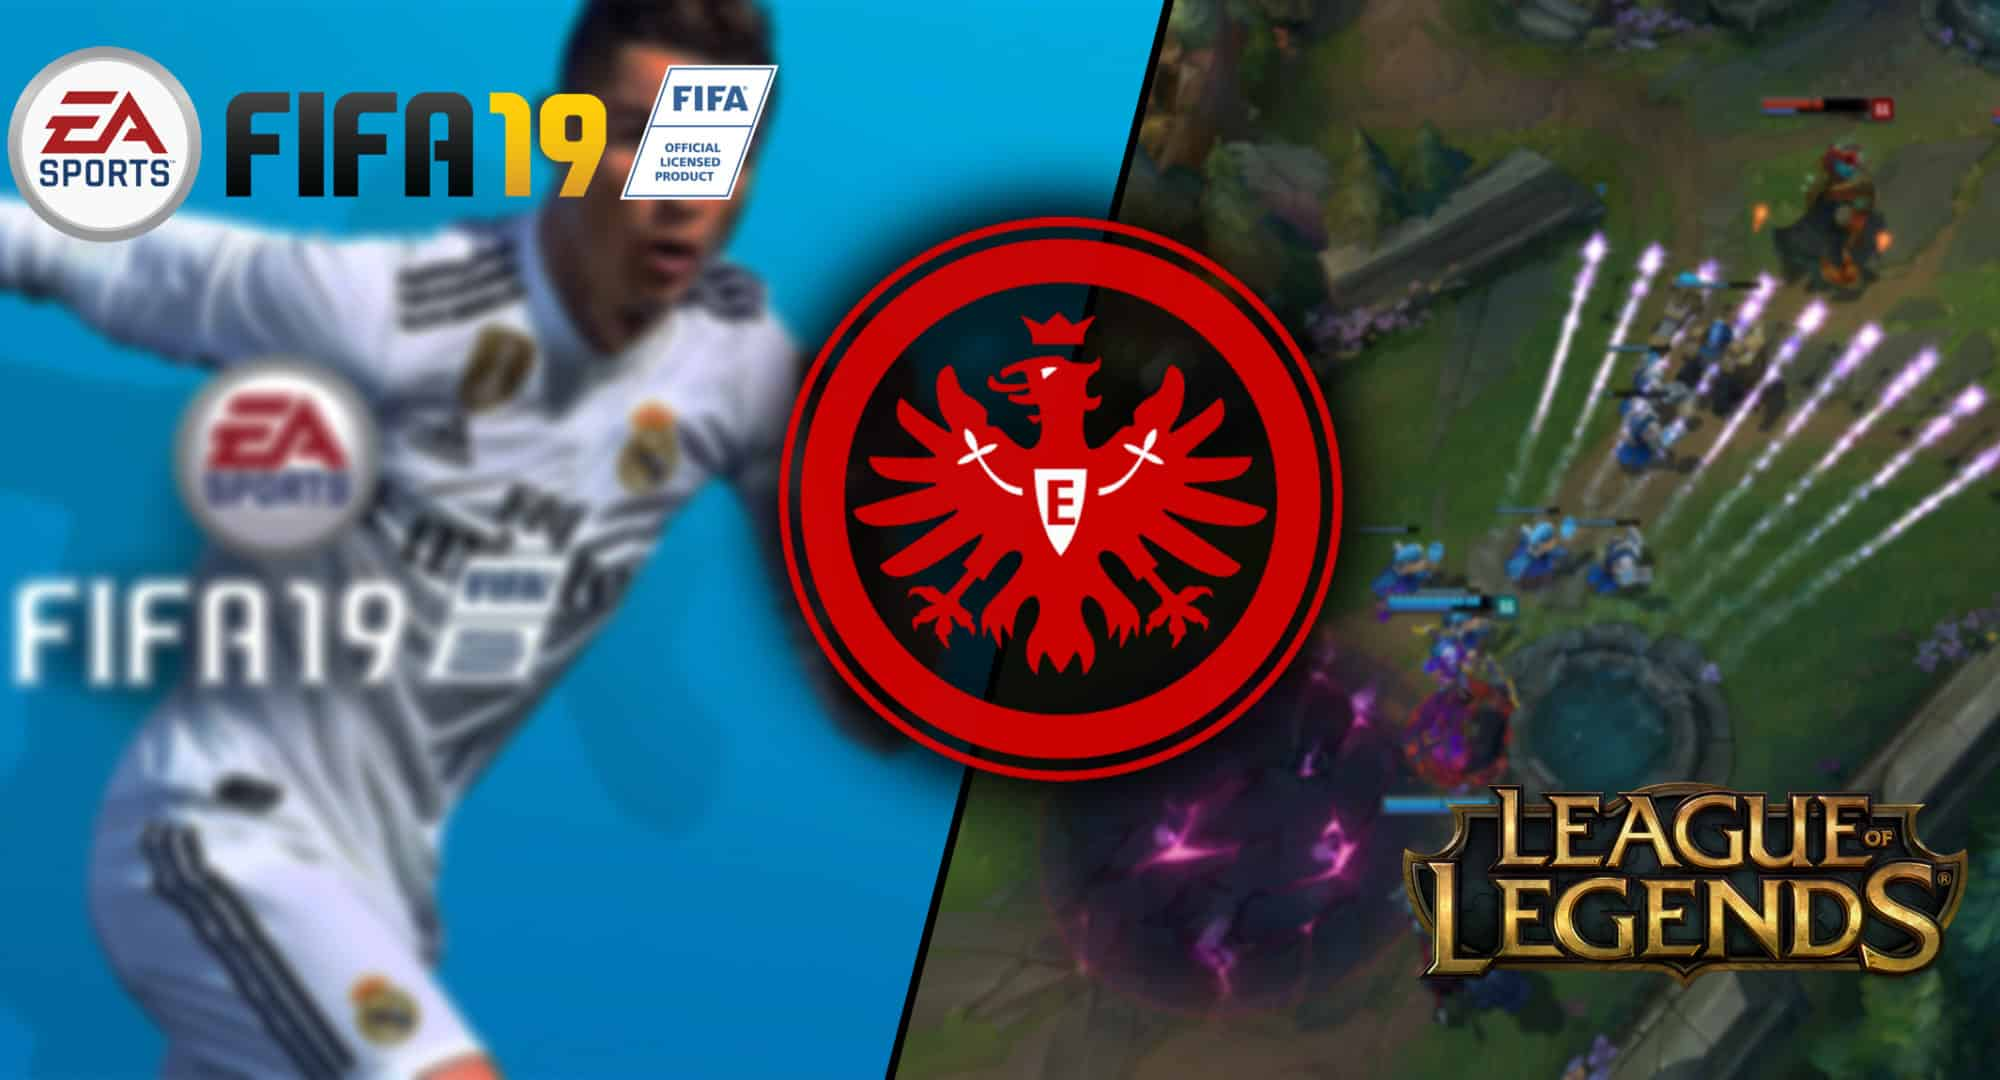 Eintracht Frankfurt Esport League Of Legends Kommt Dazu Gaming